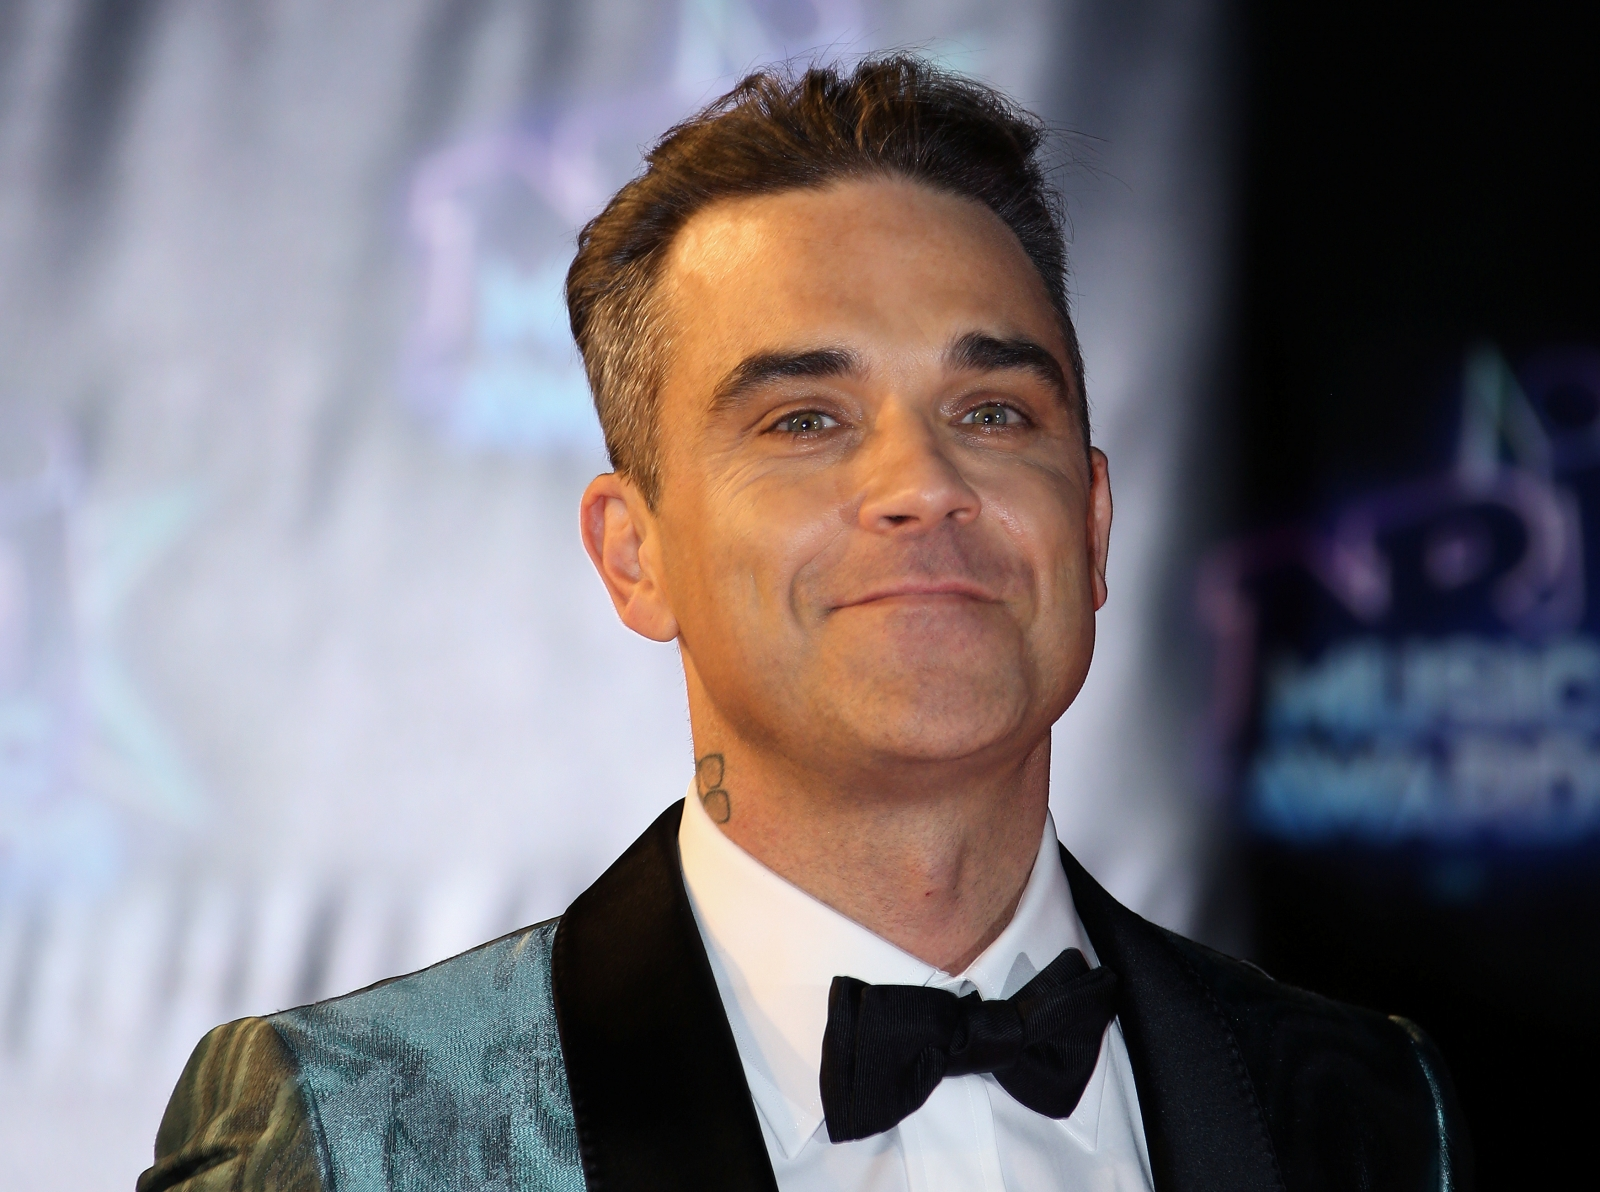 Robbie Williams tour: Management placing tickets on resale ...